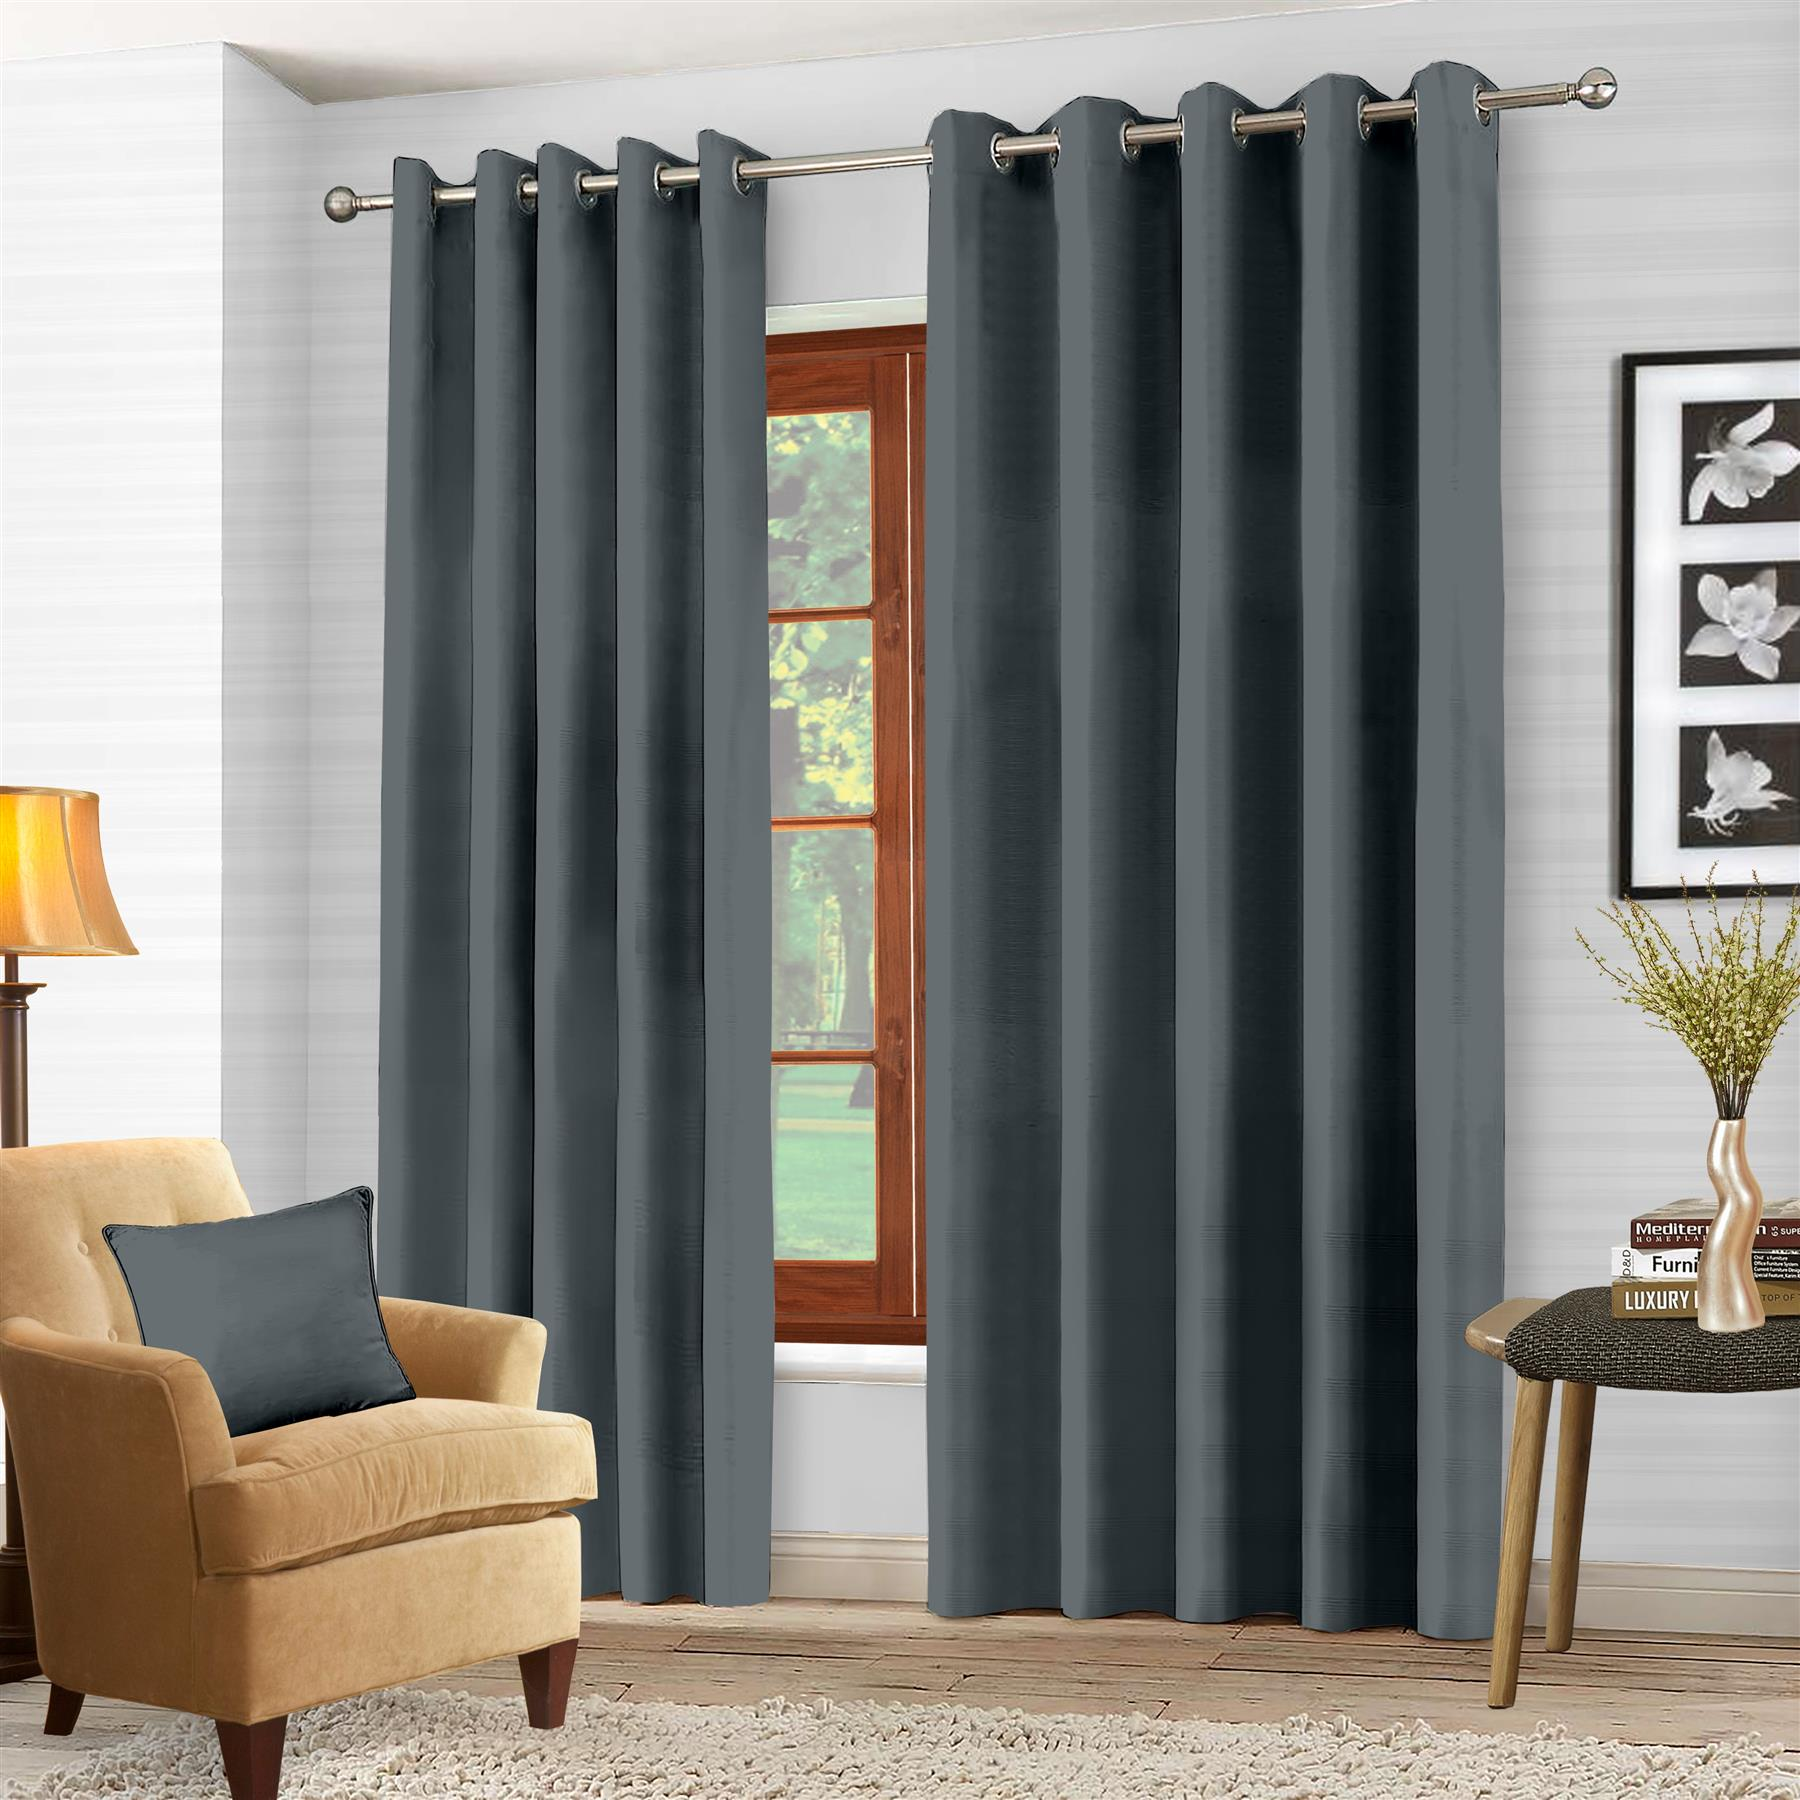 Luxury-Thermal-Blackout-Eyelet-Ring-Top-Curtains-Pair-with-tie-backs thumbnail 19